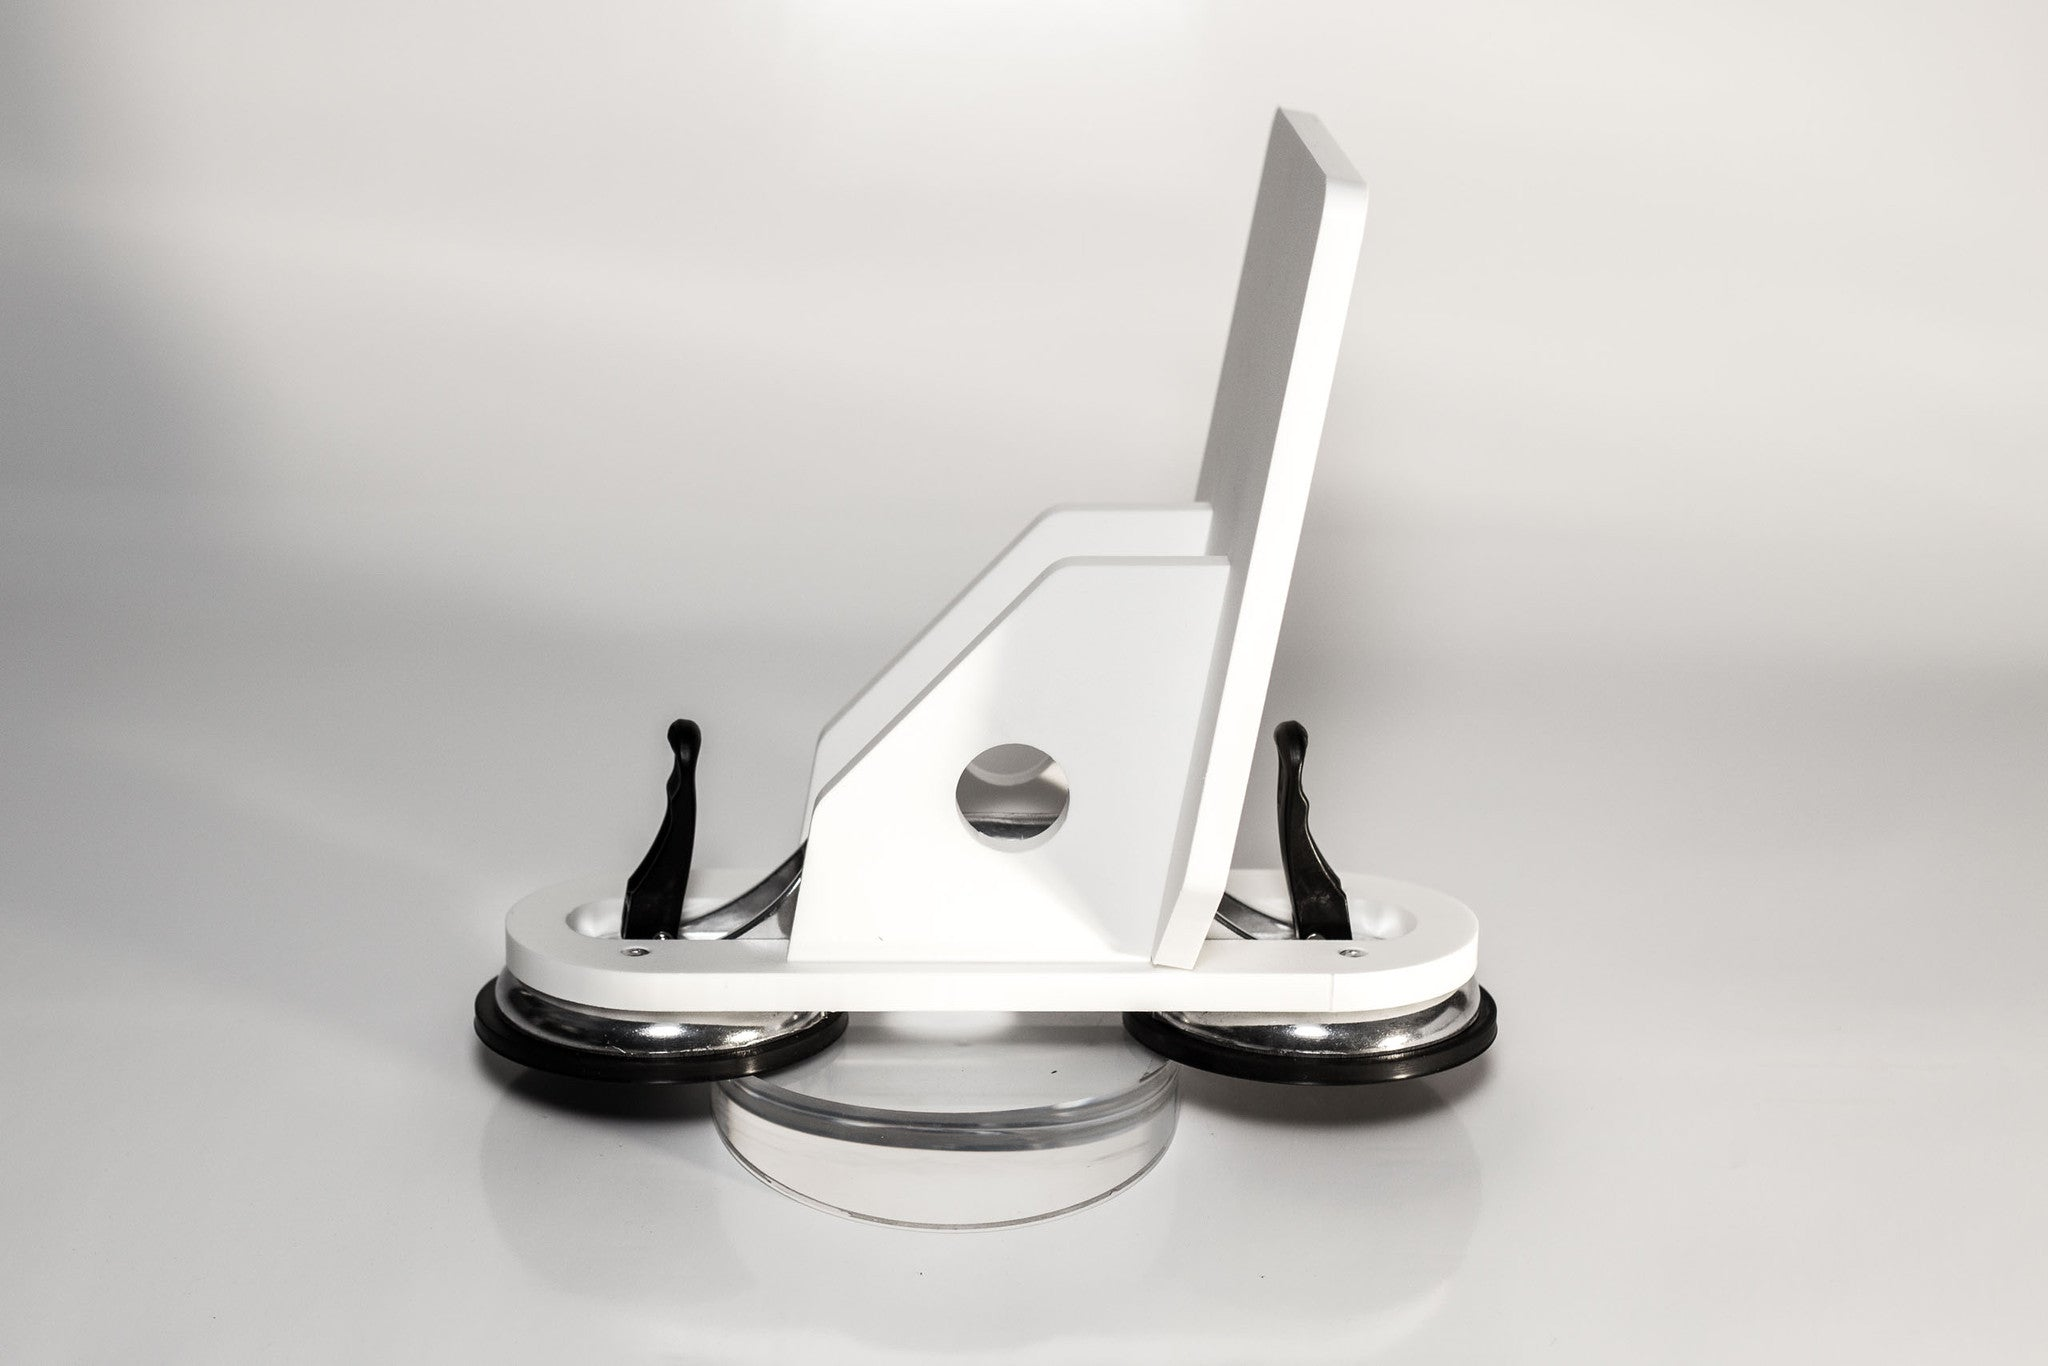 Suck Gate - Wakesurf Wave Generator - Boat Attachment